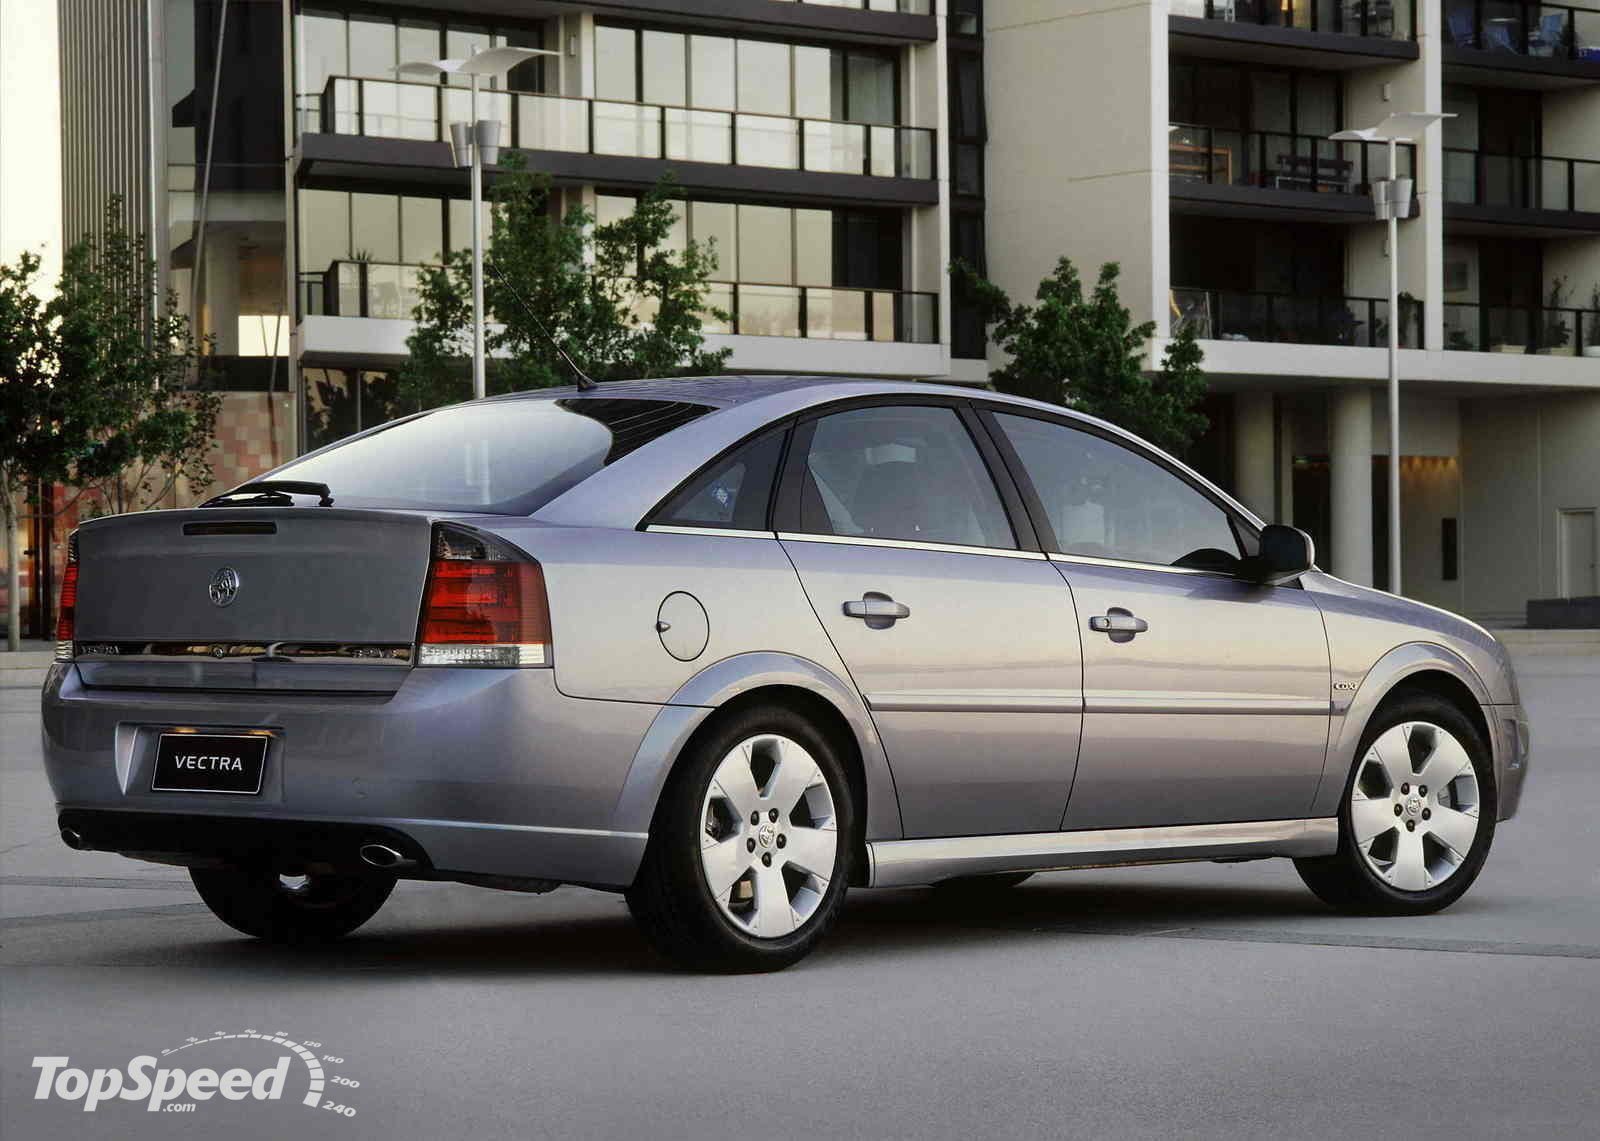 2004 Holden Vectra #5